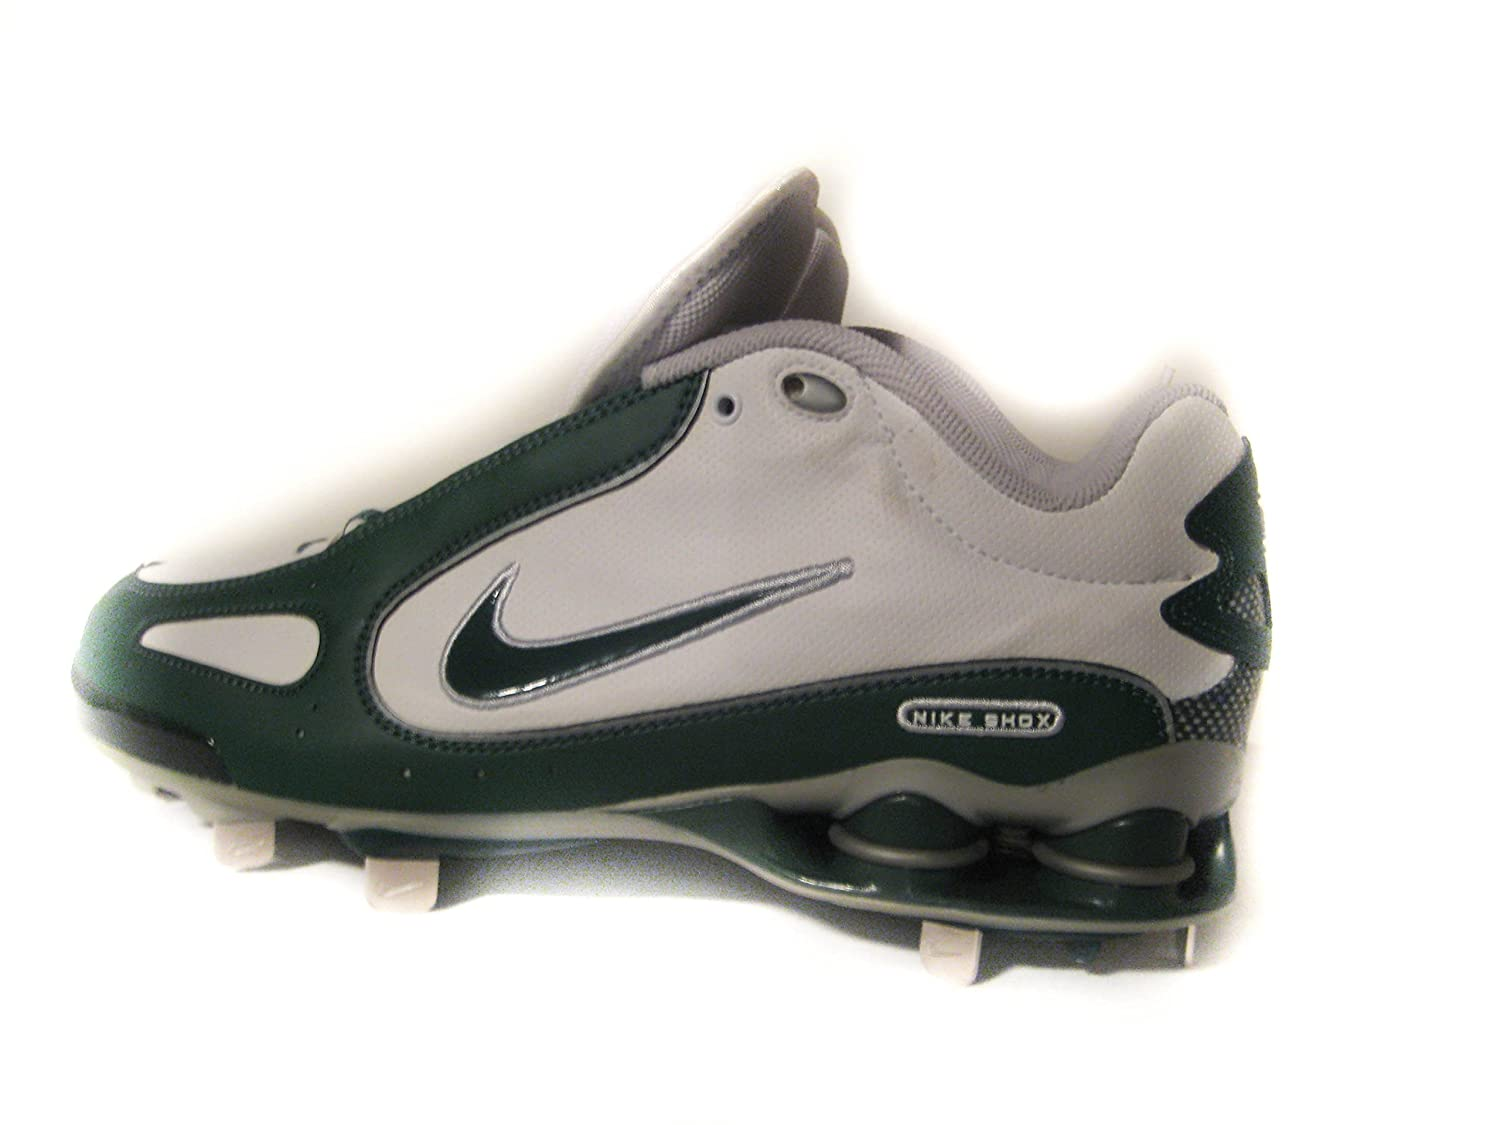 detailed look fc613 10bfd Amazon.com: Nike Shox Men's Monster Metal Baseball Cleats ...